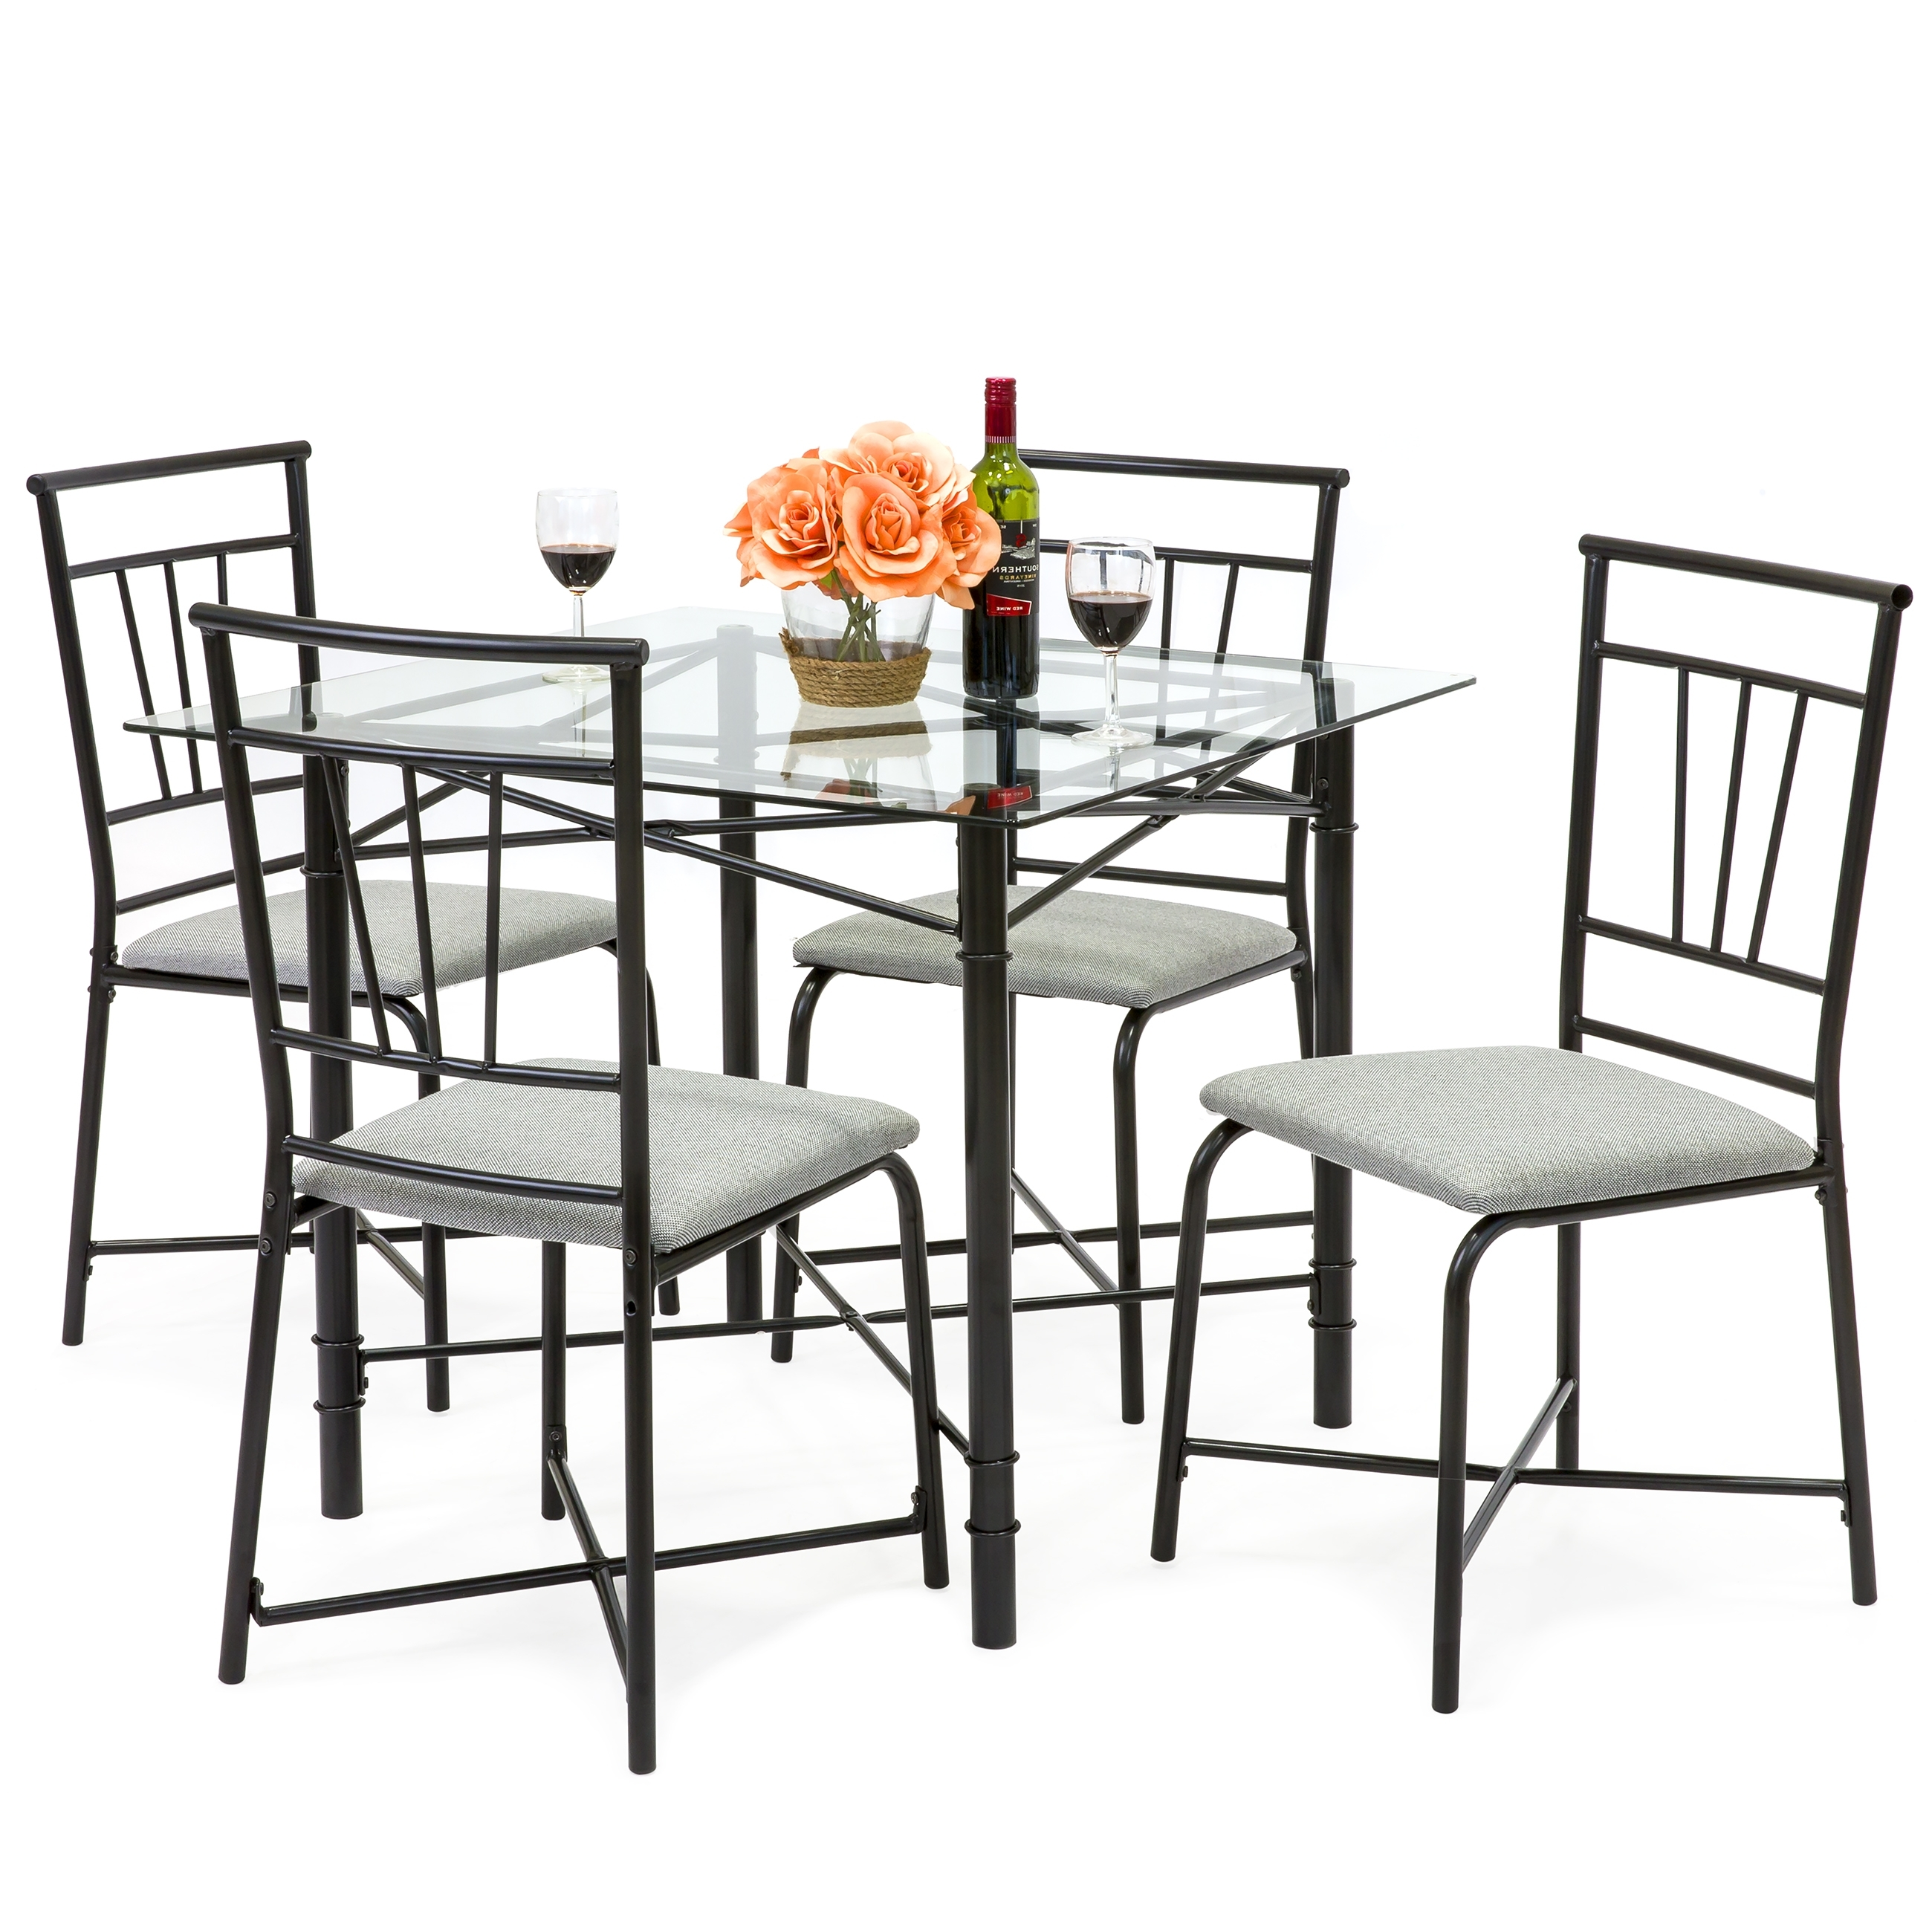 Preferred Black Glass Dining Tables And 4 Chairs Throughout Best Choice Products 5 Piece Square Glass Dining Table Set W/ 4 Upholstered Chairs (View 23 of 25)